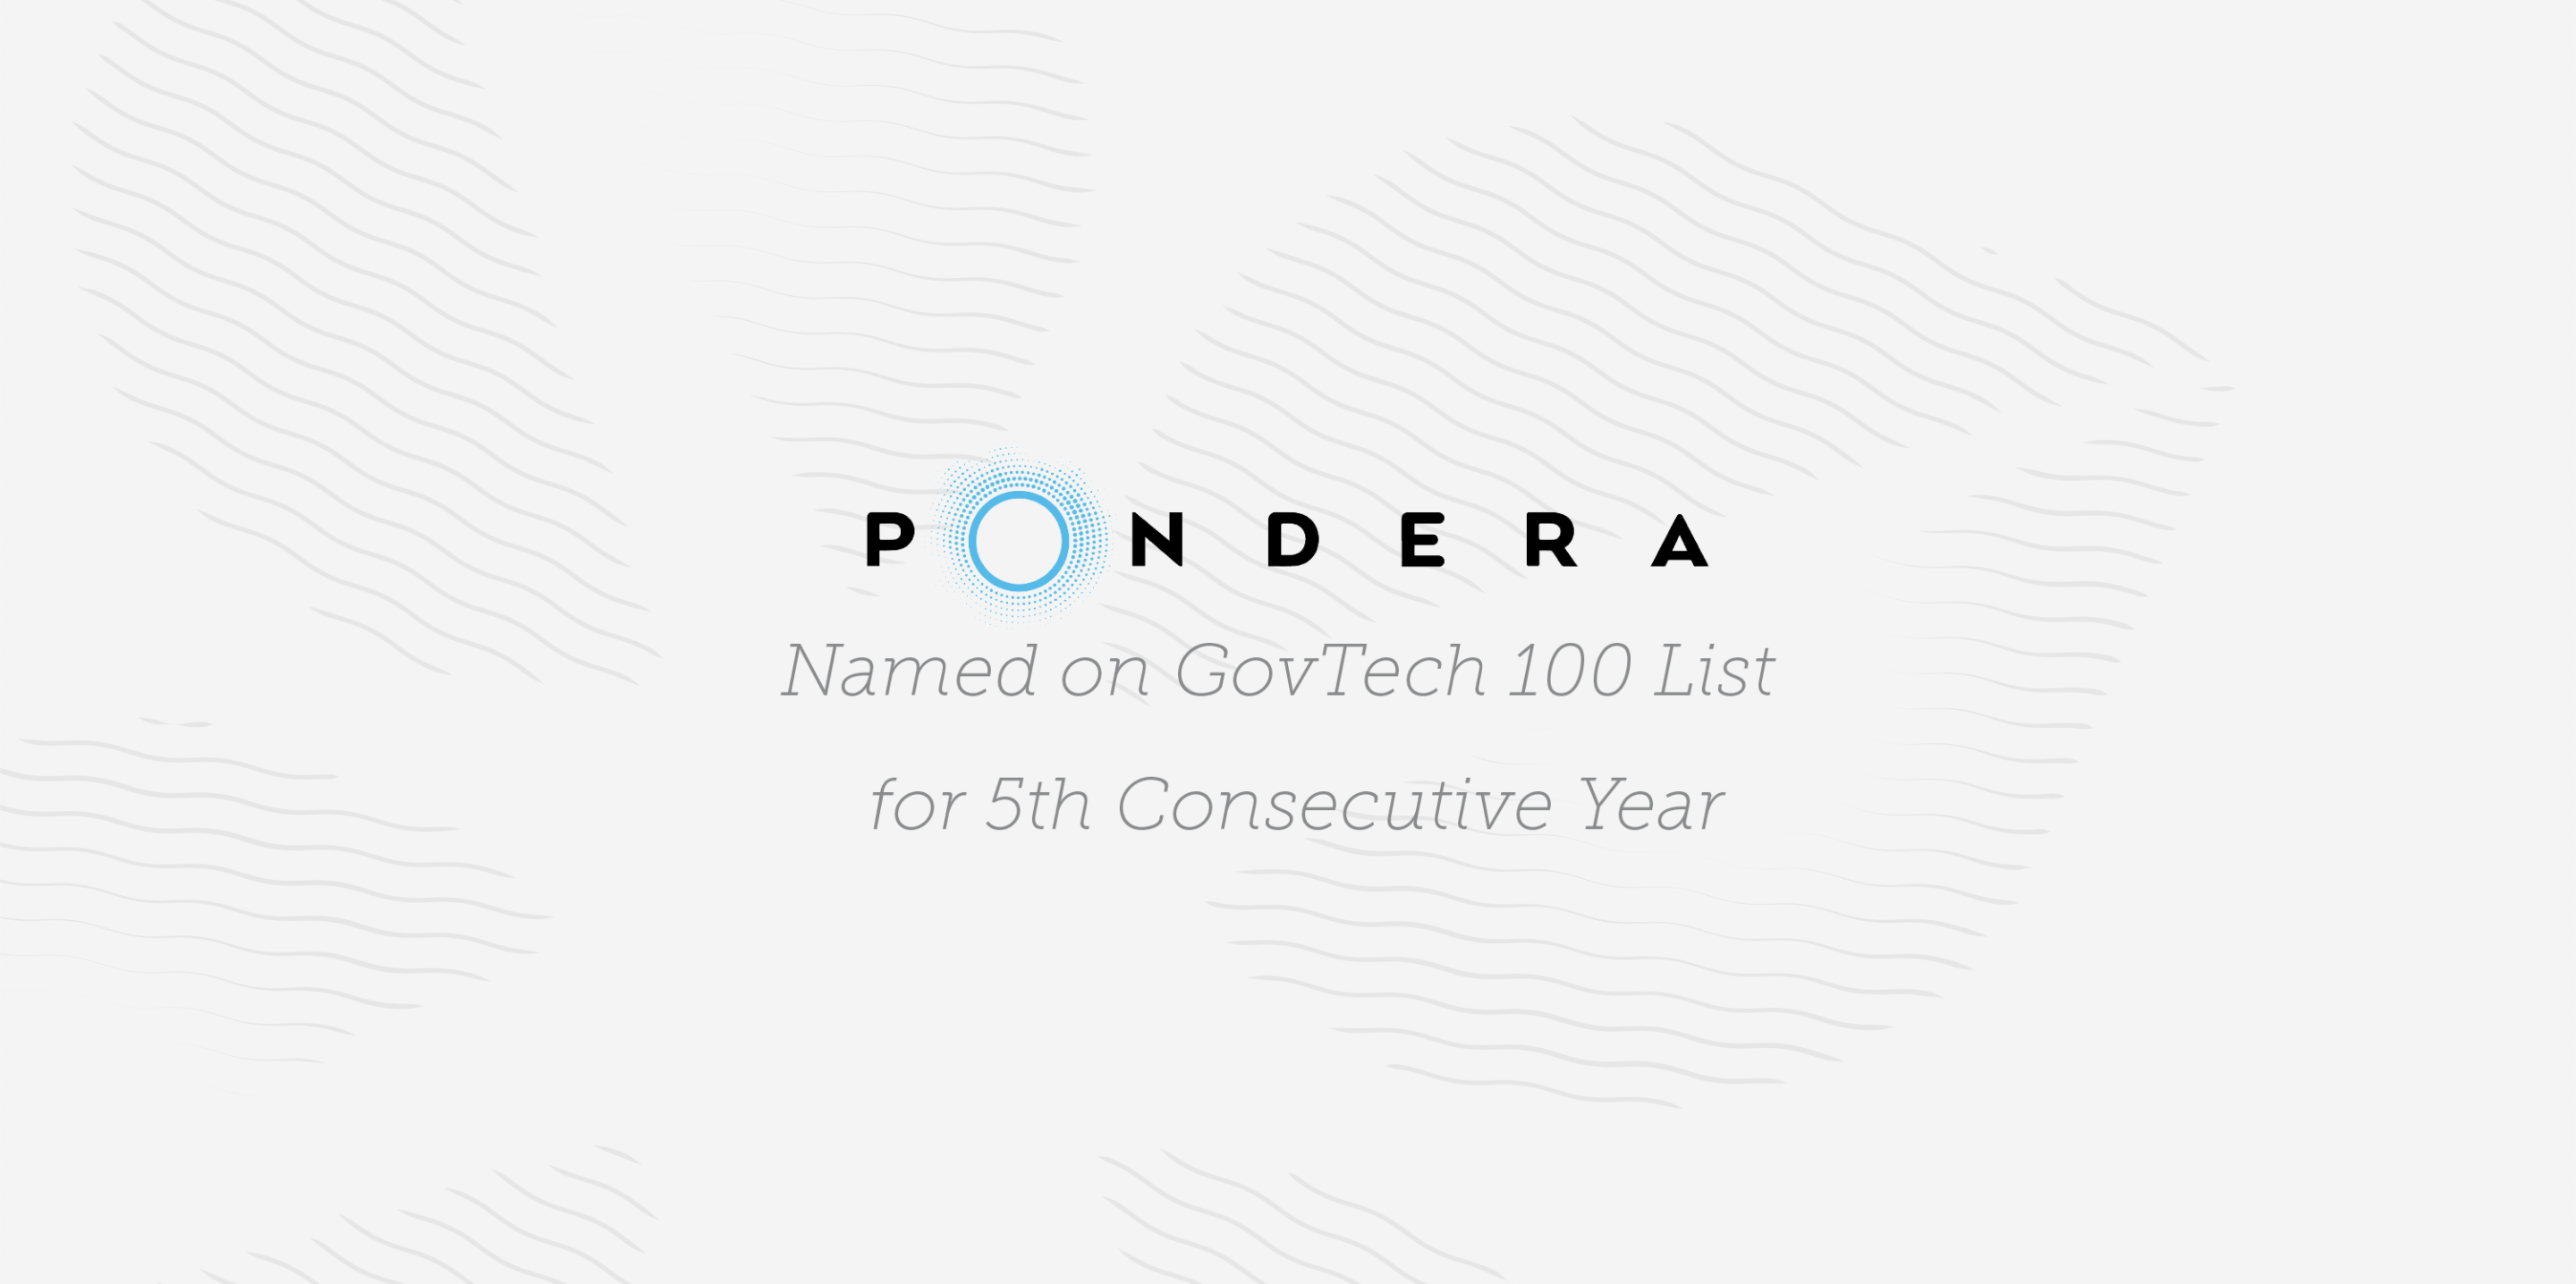 Pondera, a Serent Portfolio Company, Named on GovTech 100 List for 5th Consecutive Year